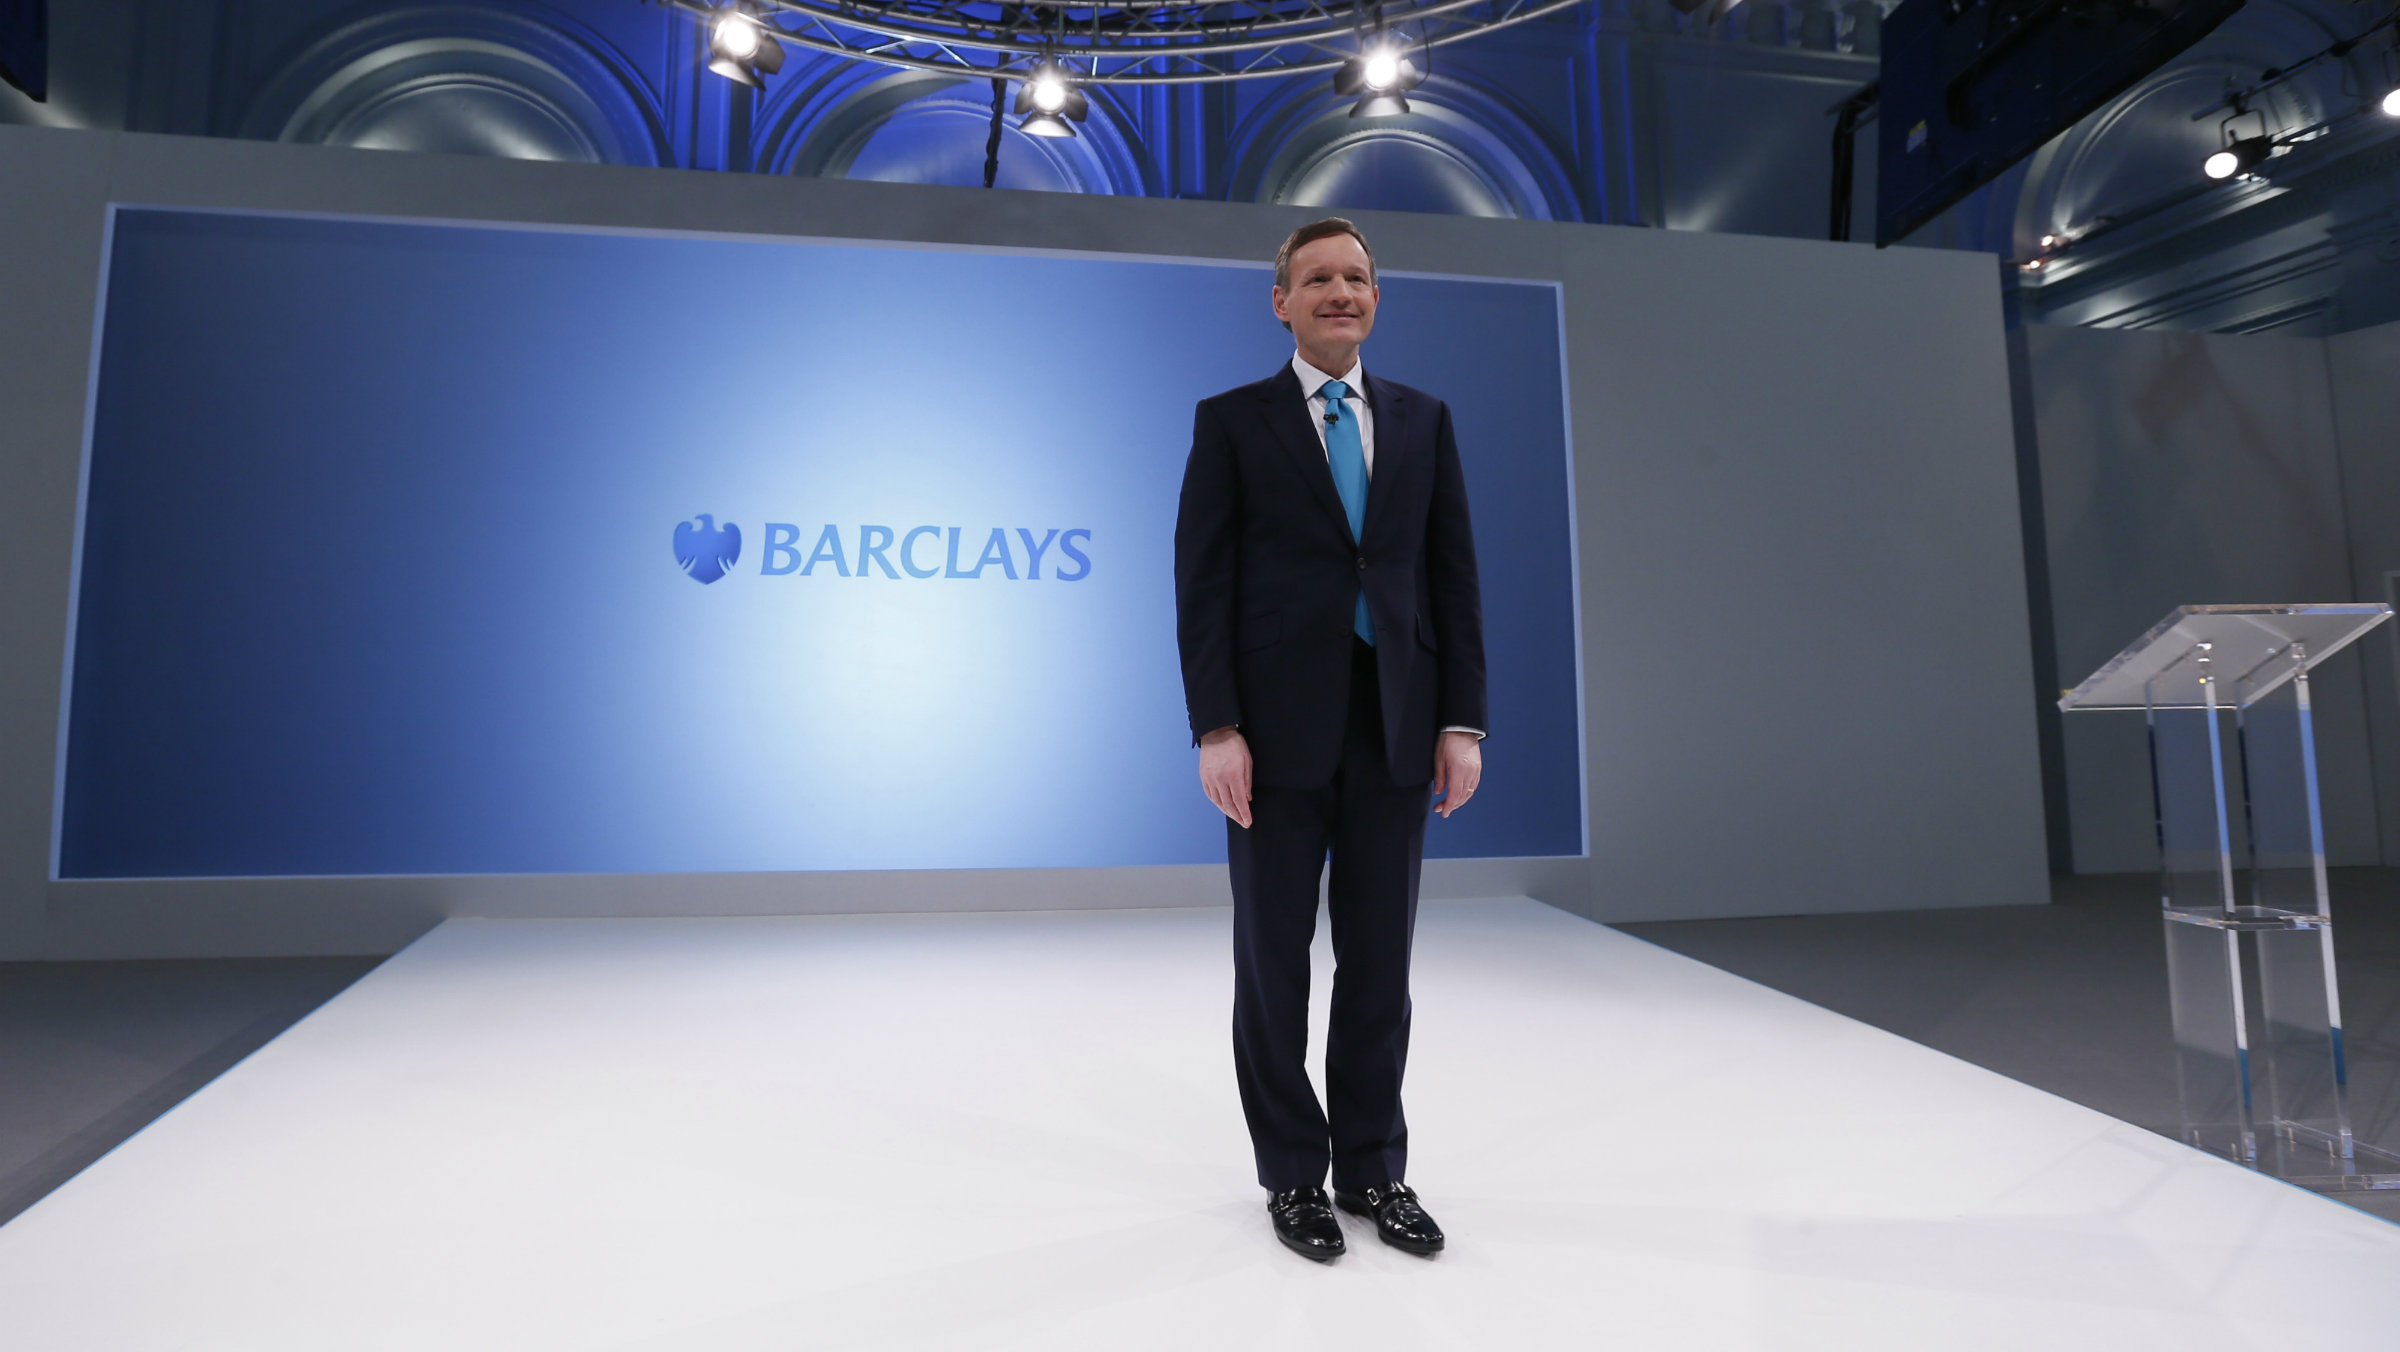 Barclays chief executive Antony Jenkins poses for the media in London.